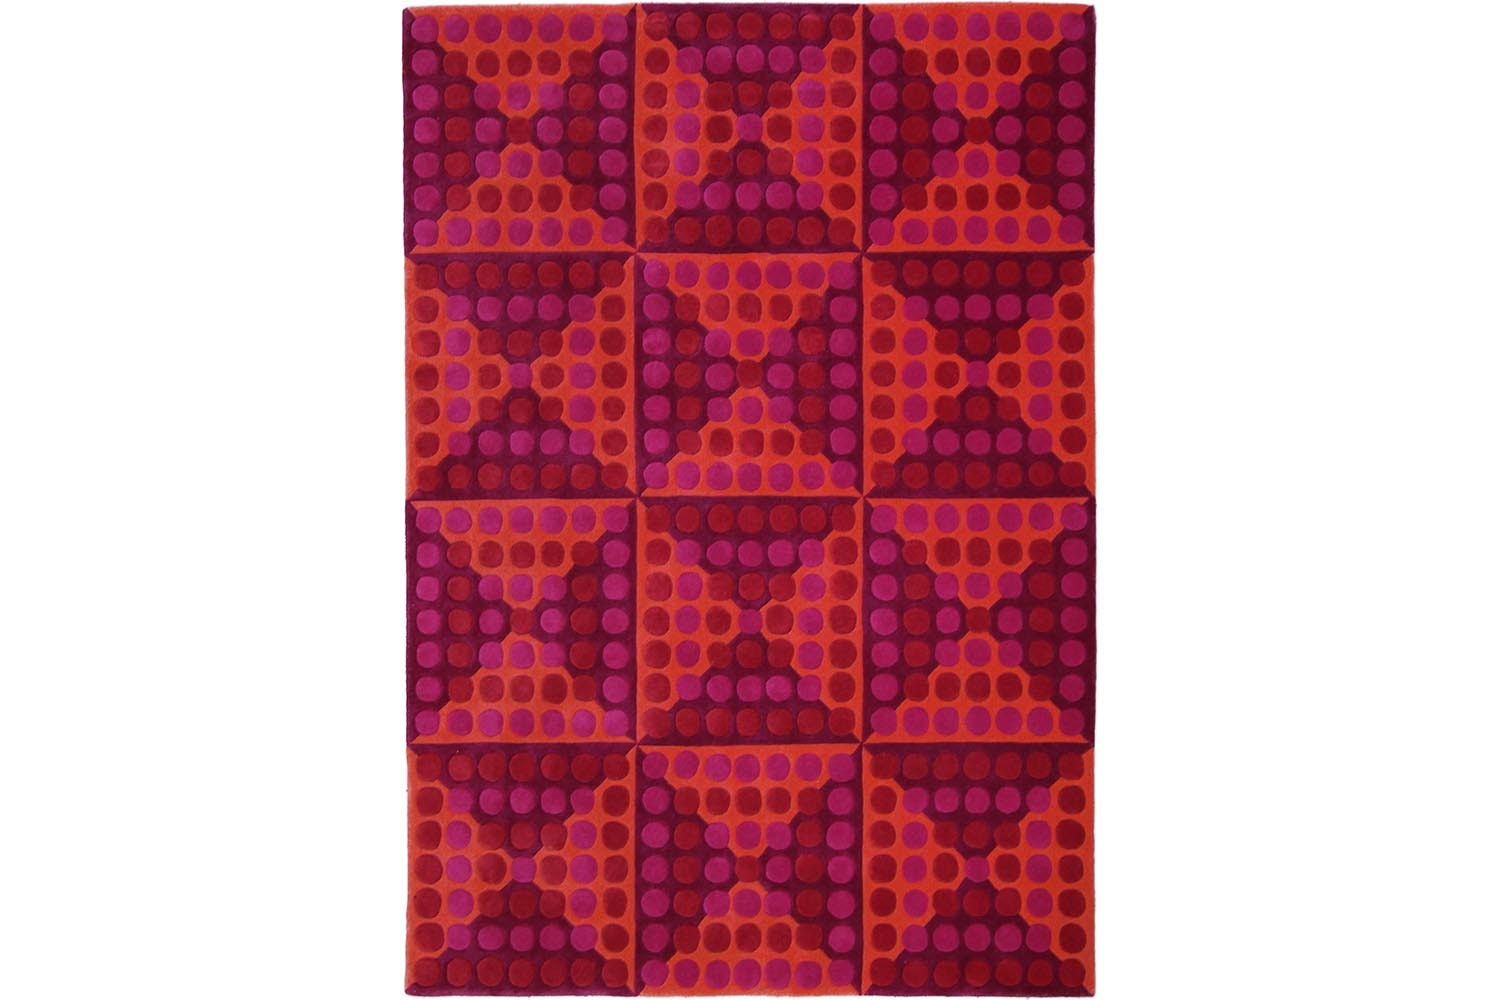 Spiegel Rug by Verner Panton for Verpan